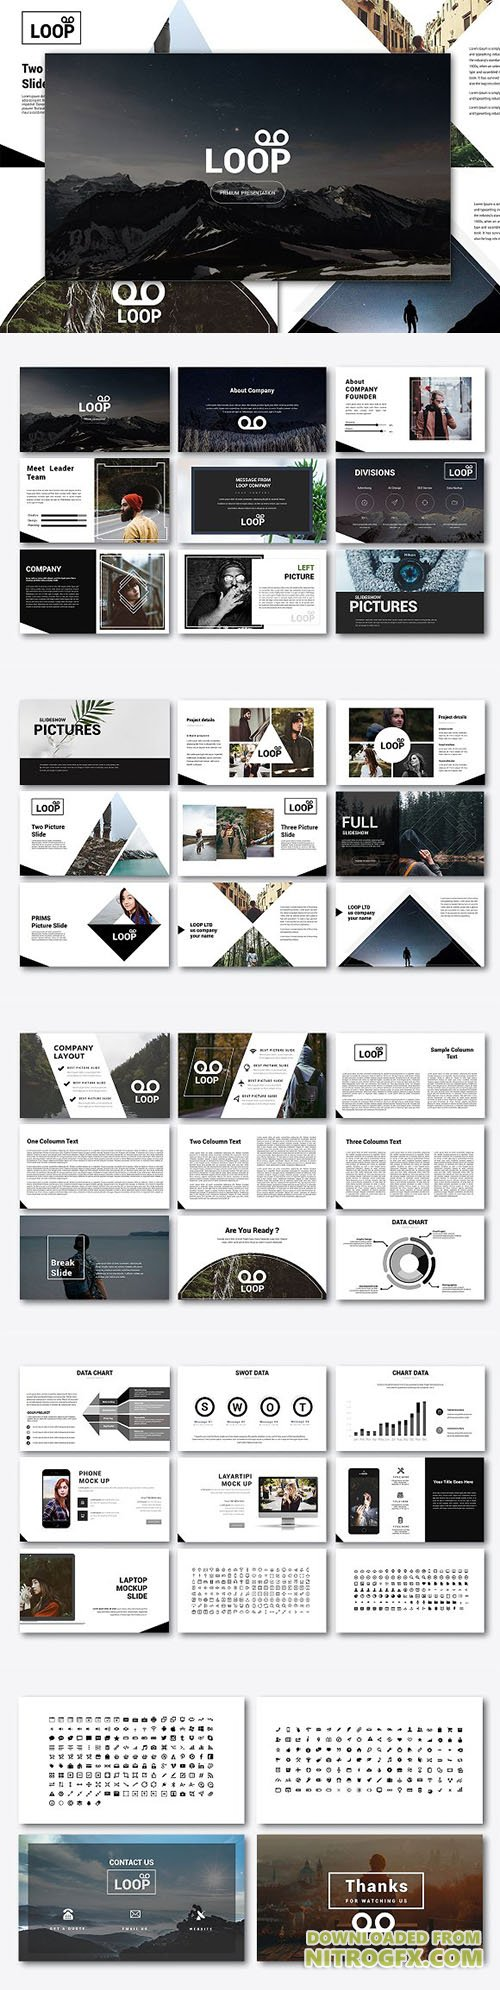 Powerpoint template size pixels image collections templates powerpoint template size pixels choice image templates example powerpoint template size pixels gallery templates example free toneelgroepblik Image collections